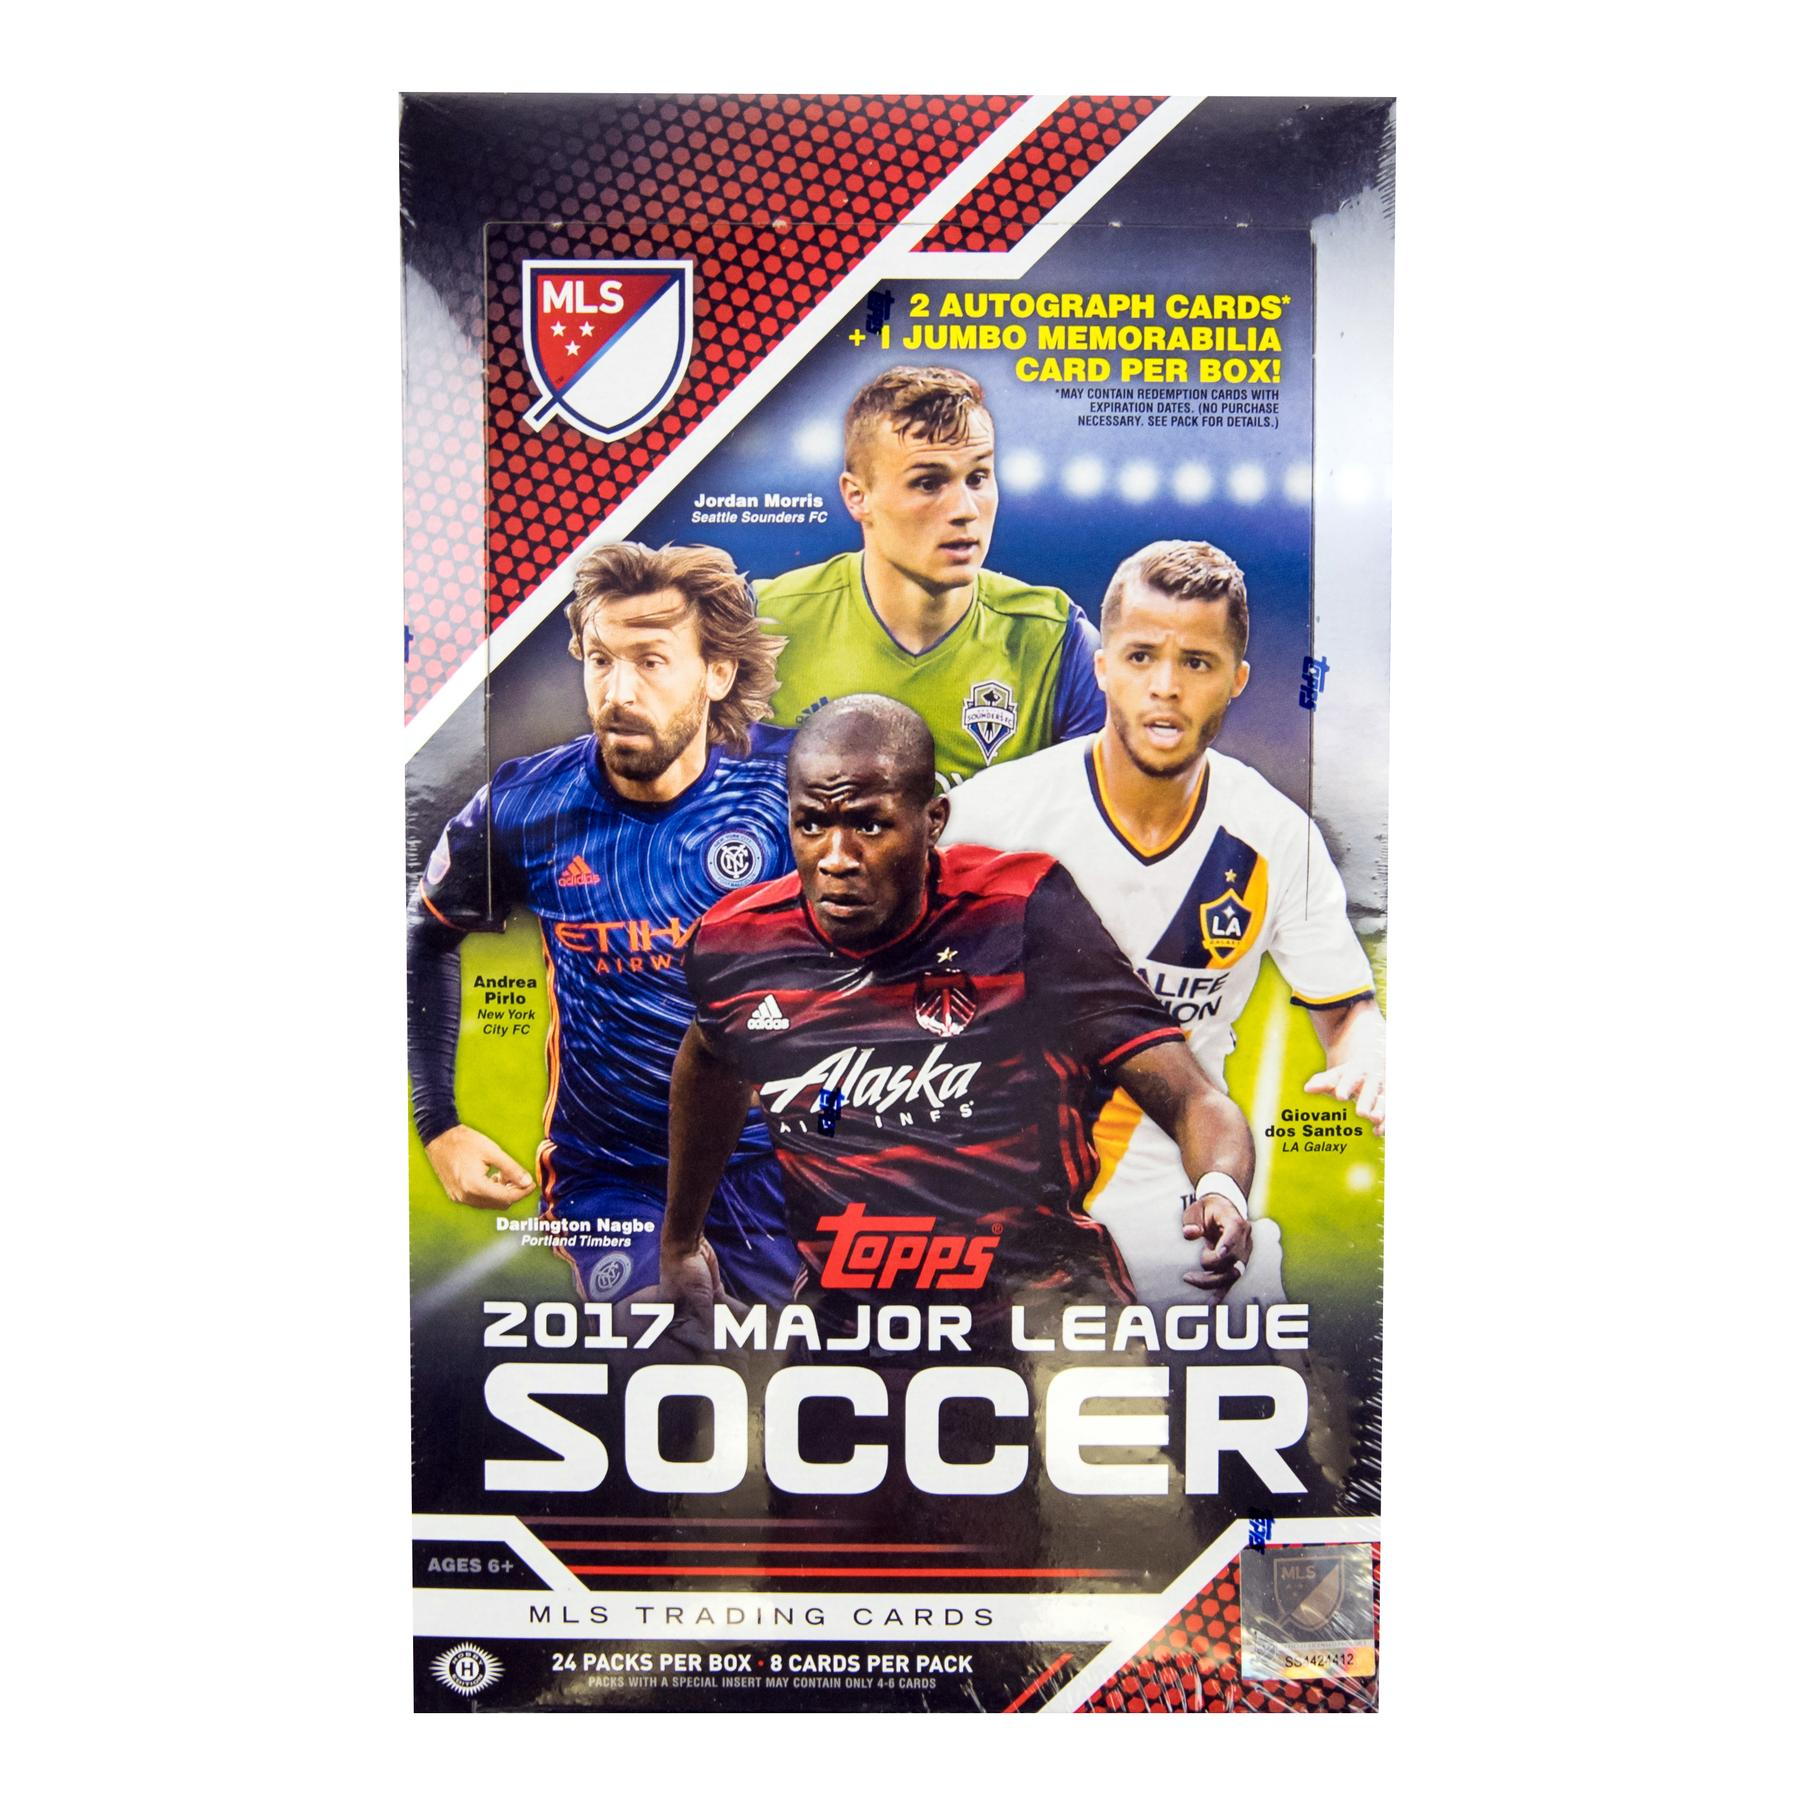 2017 Topps Mls Major League Soccer Hobby Box Da Card World